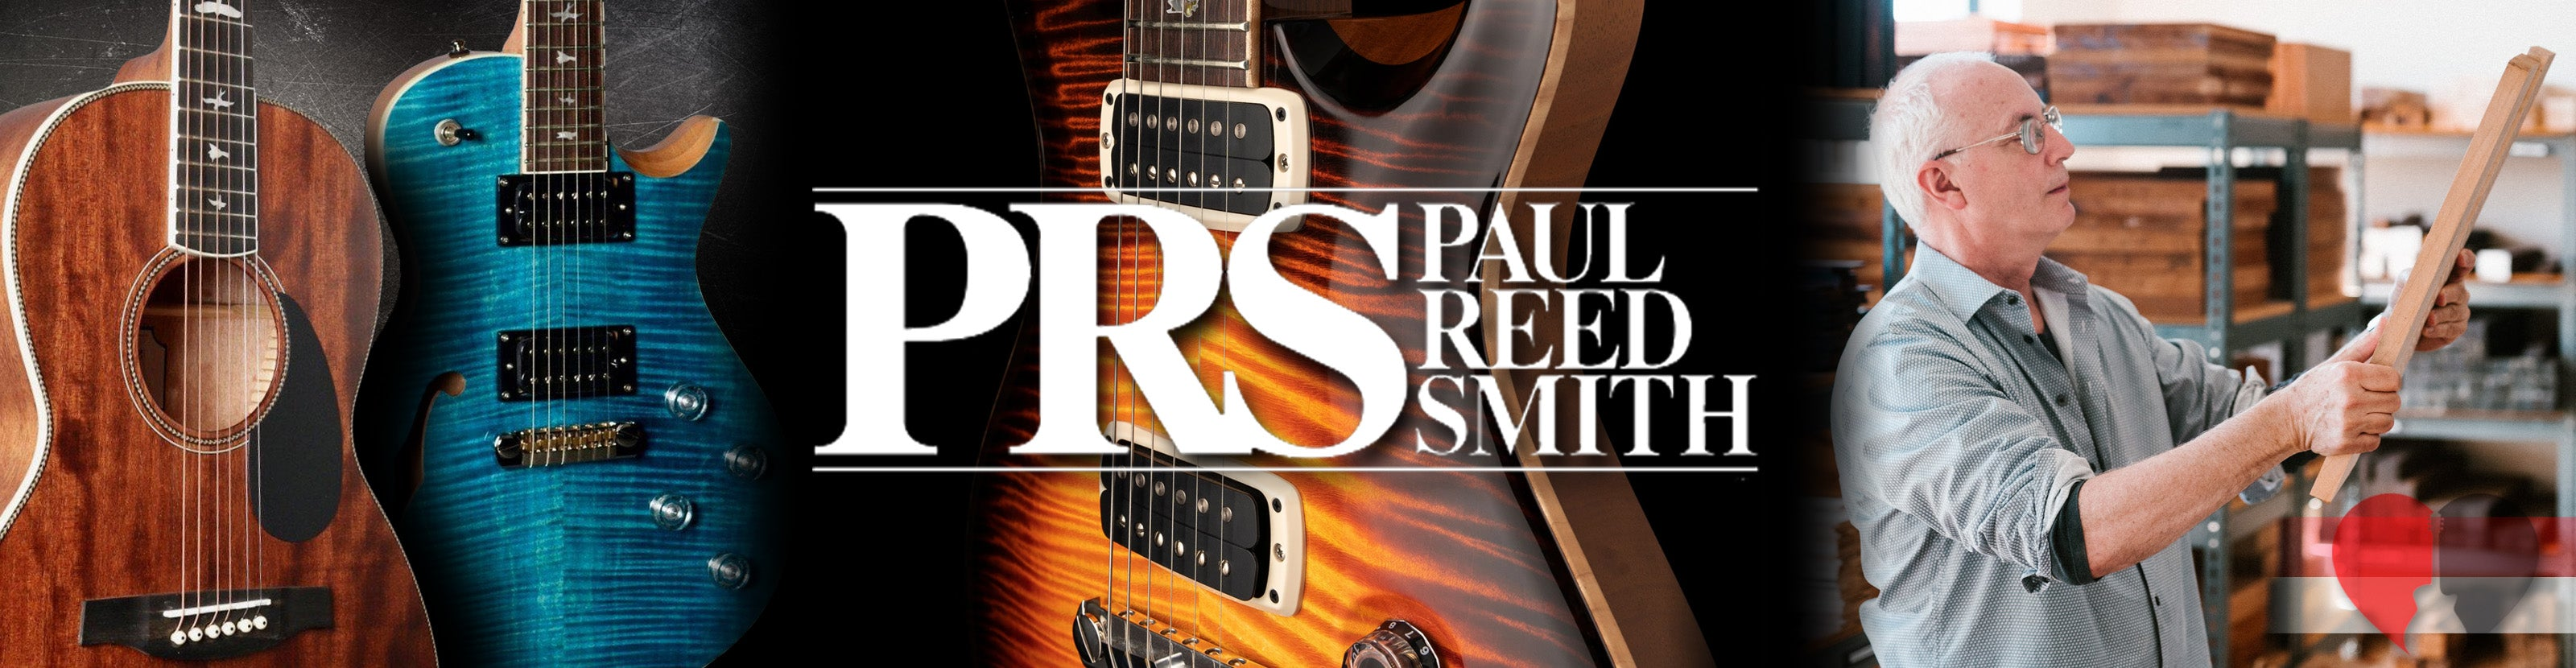 Paul Reed Smith Guitars